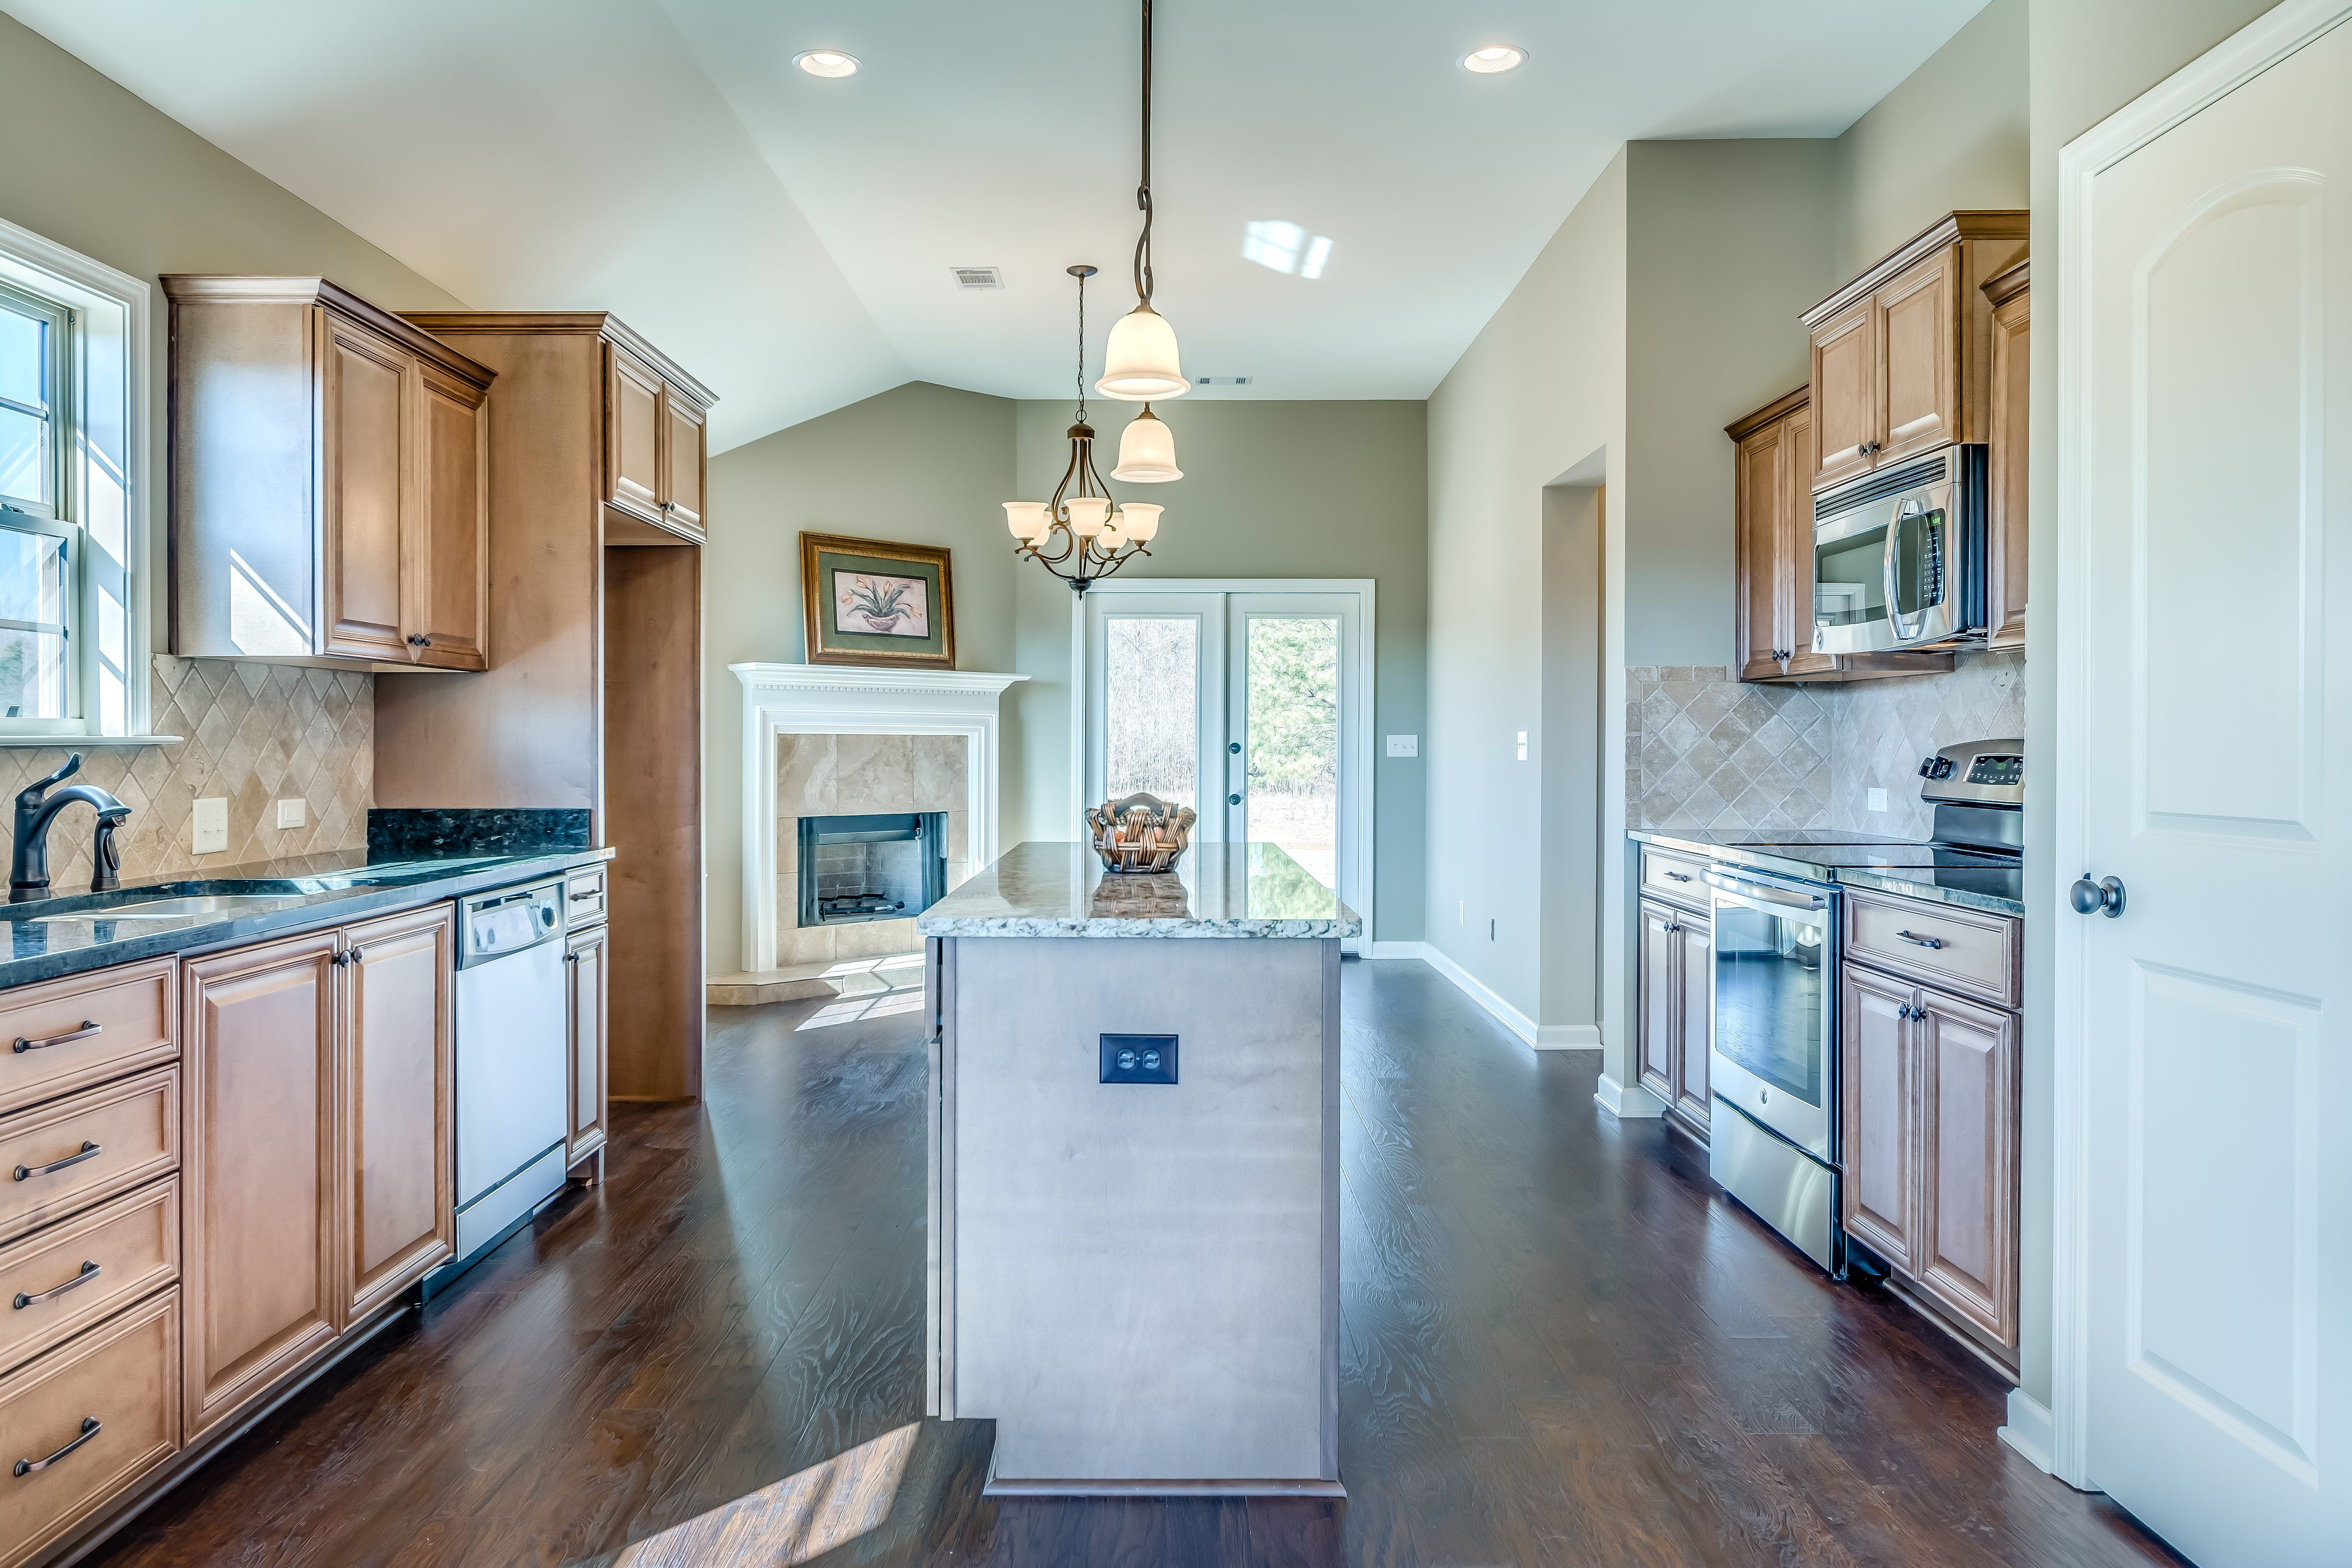 Beautiful kitchen with stainless steel appliances, granite countert ...